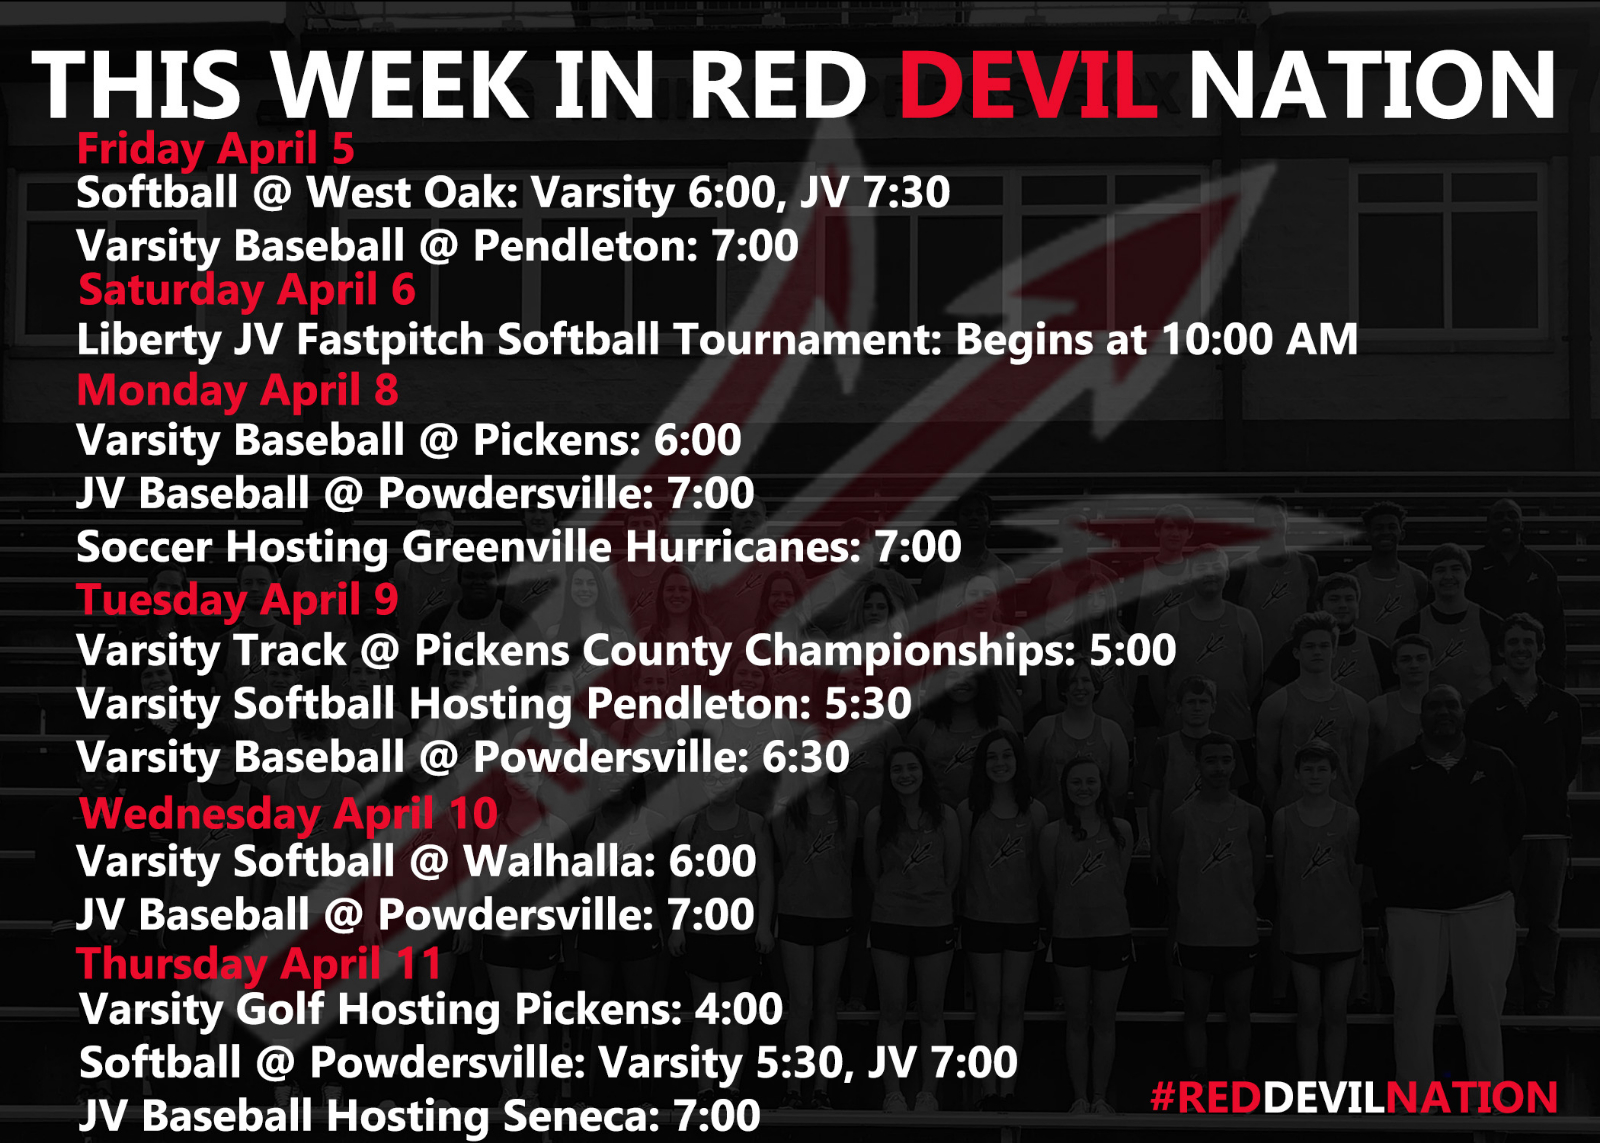 This Week In Red Devil Nation